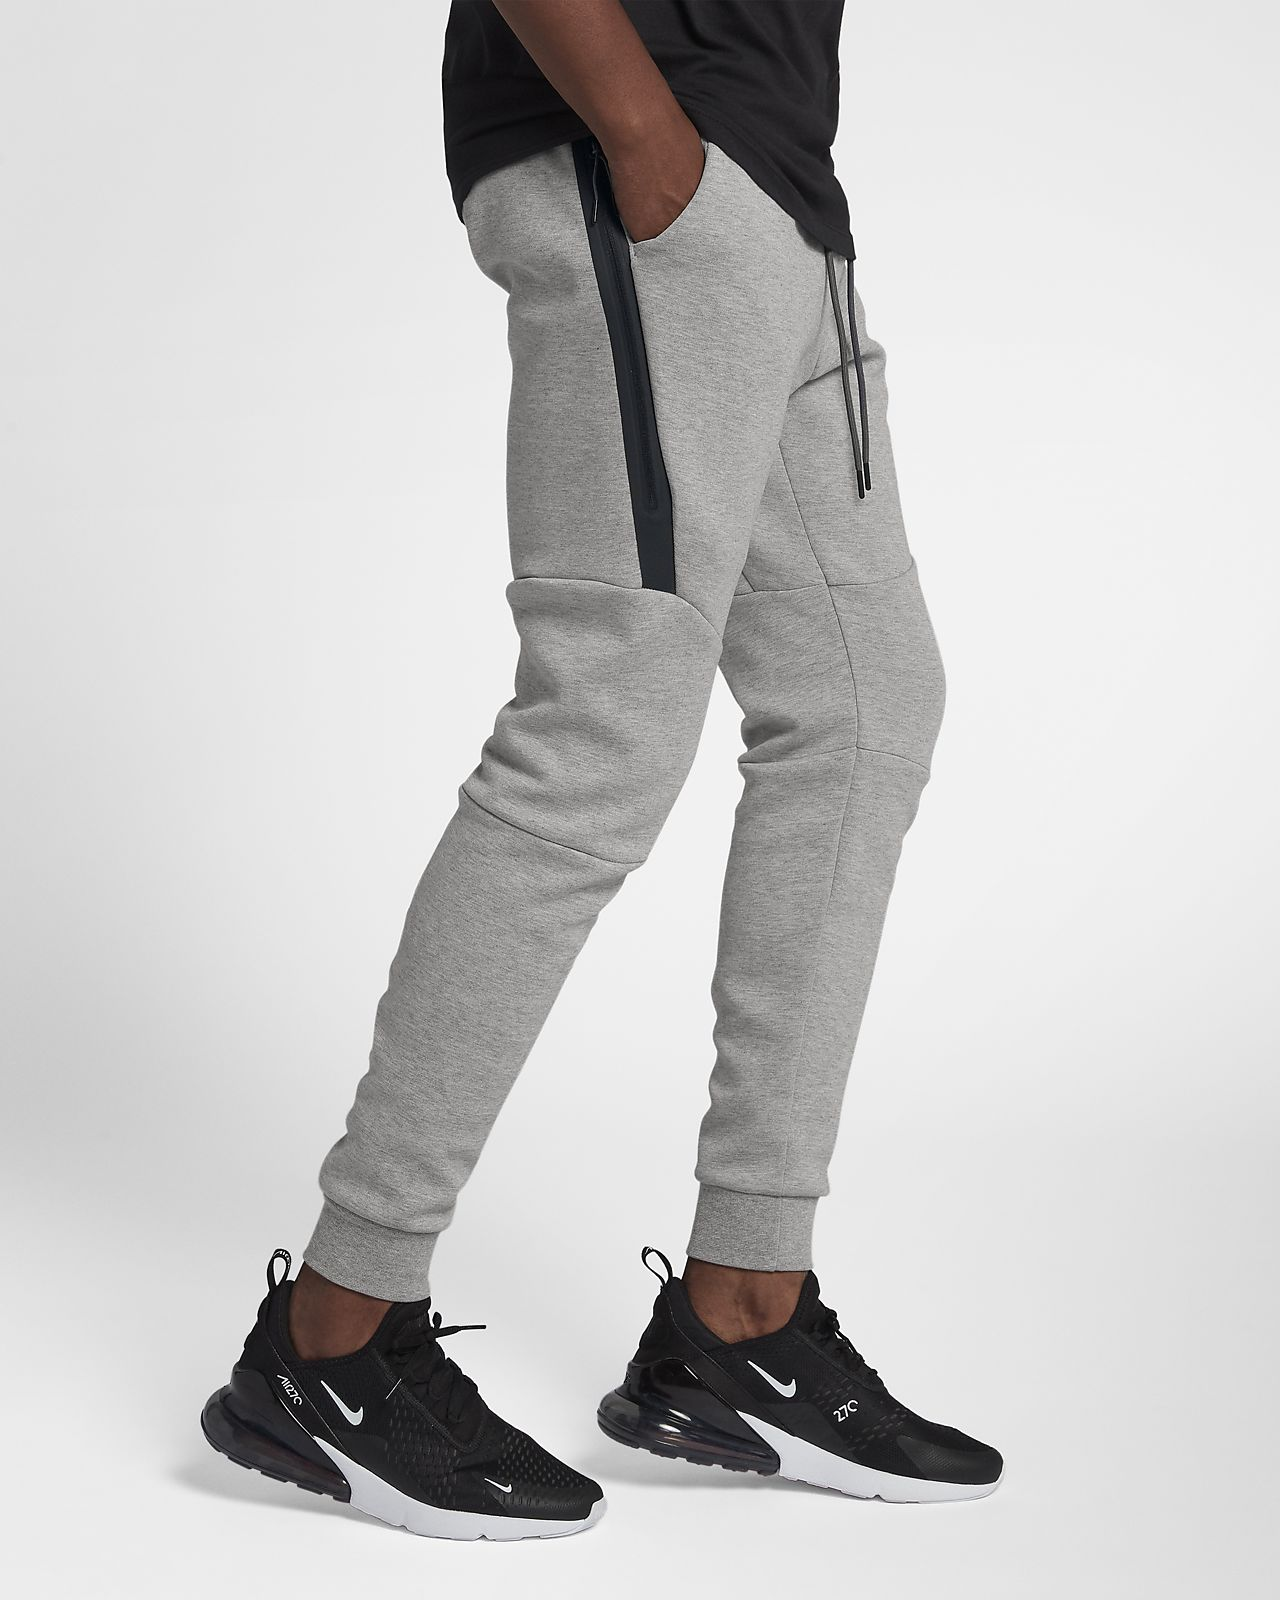 b1e36851 Nike Sportswear Tech Fleece Men's Joggers. Nike.com